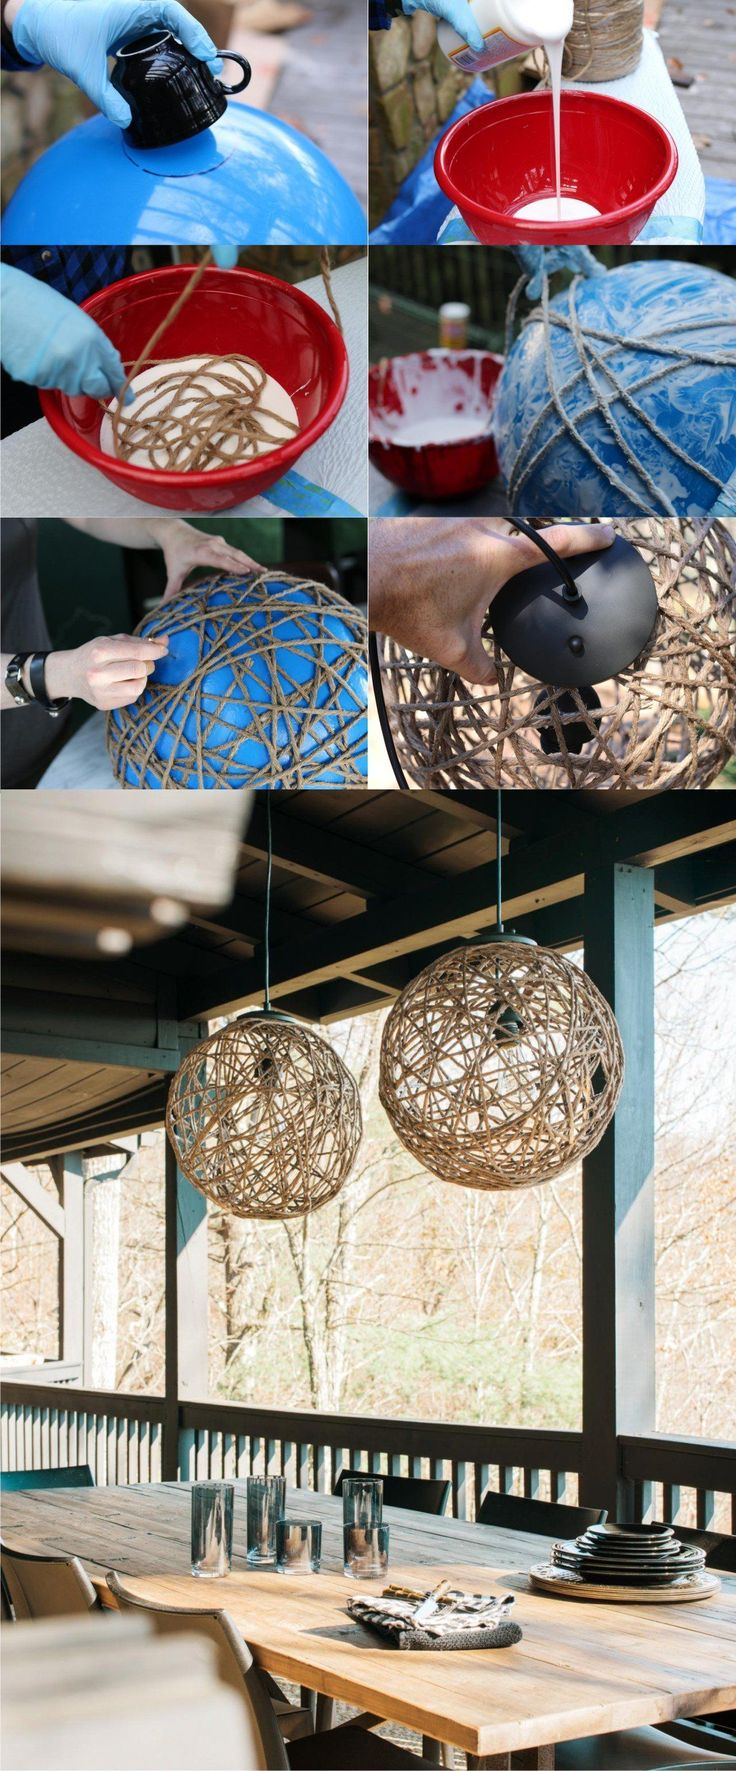 "MATERIALS inflatable rubber ball 12"" to 16"" in diameter 16 oz. container of decoupage glue 25' spool of sisal rope pendant kit filament bulb TOOLS plastic mixing bowl marker utility knife 2"" picture nail rubber gloves drop cloth More info and instructions about this great tutorial you can find in the source url - above […]"